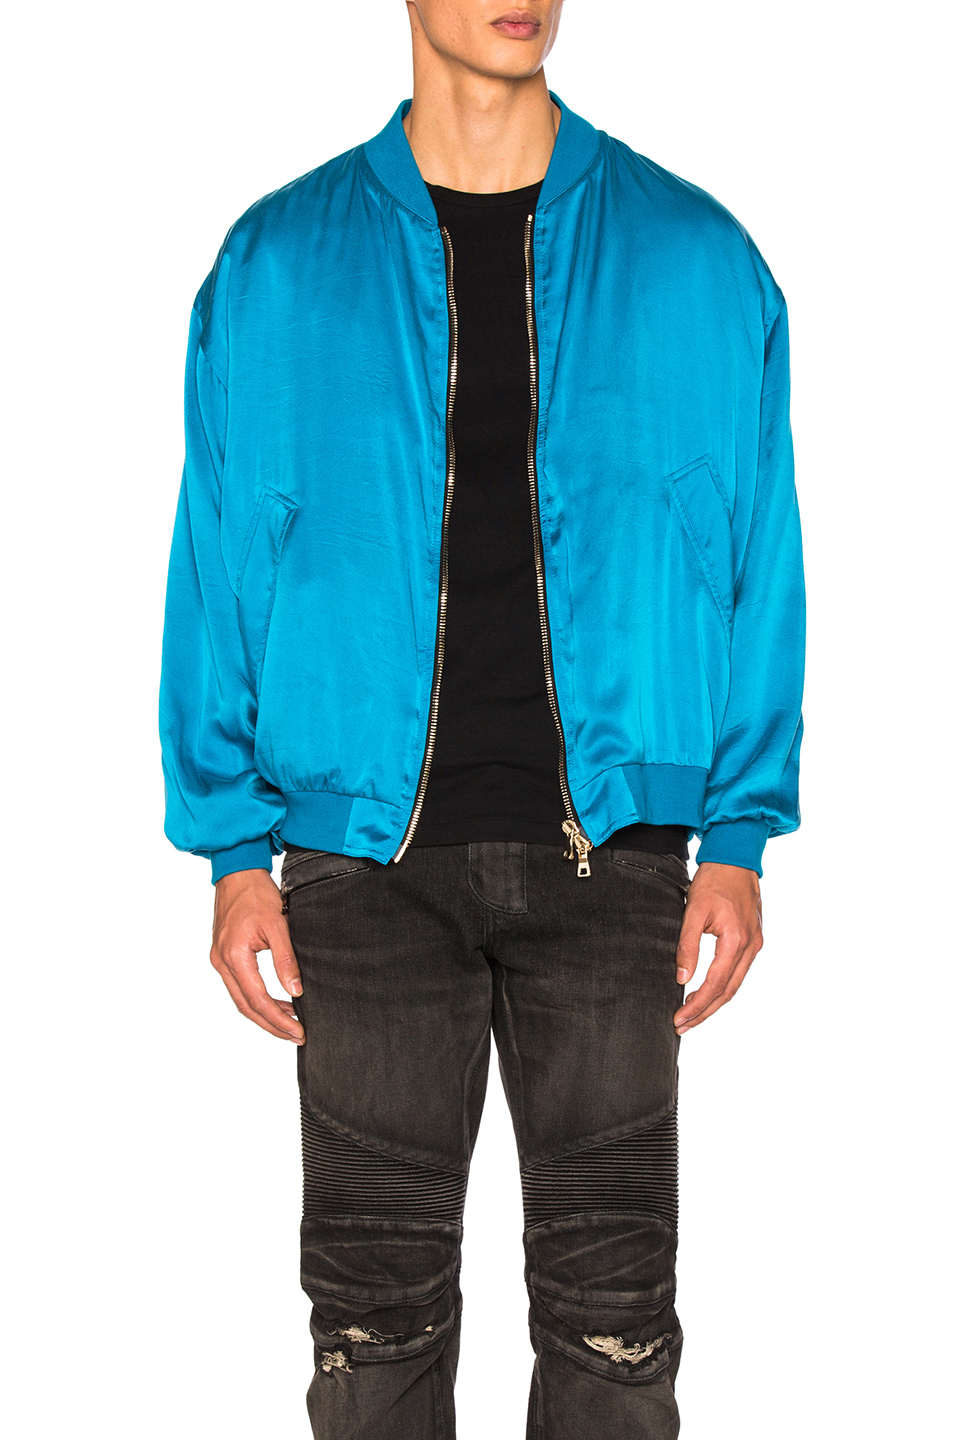 BALMAIN Bomber Jacket in Blue